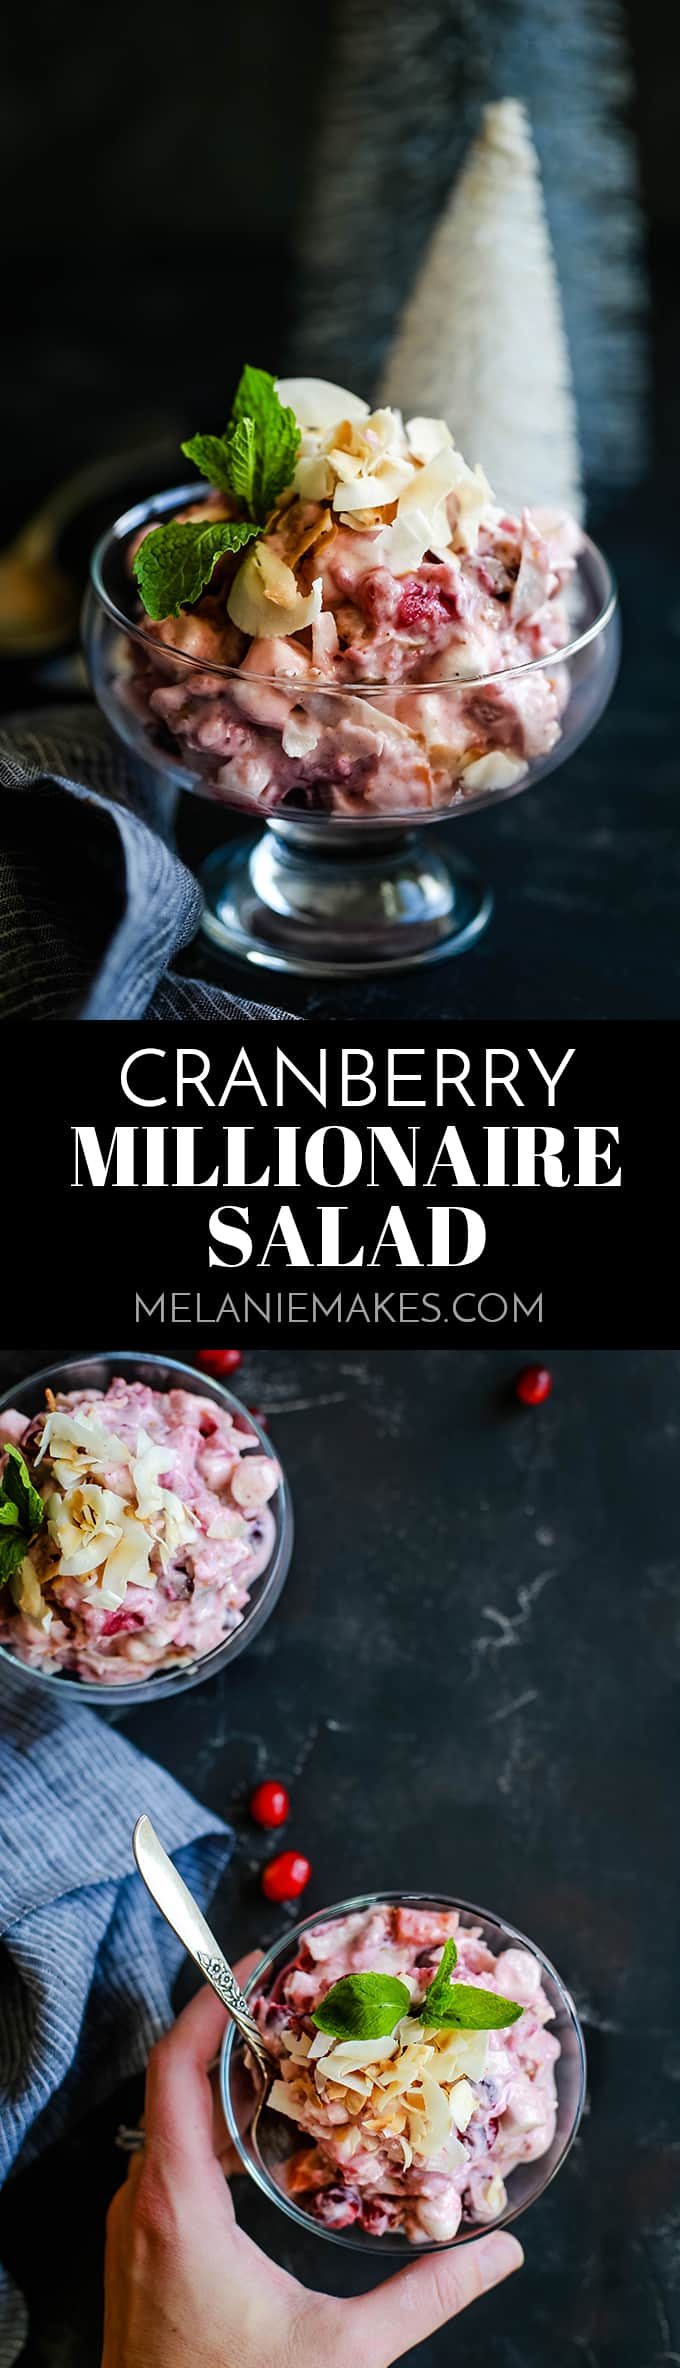 This make ahead four ingredient Cranberry Millionaire Salad will no doubt be the easiest - and most delicious! - side dish at your holiday table! #cranberry #cranberrysauce #millionaire #salad #thanksgiving #christmas #marshmallows